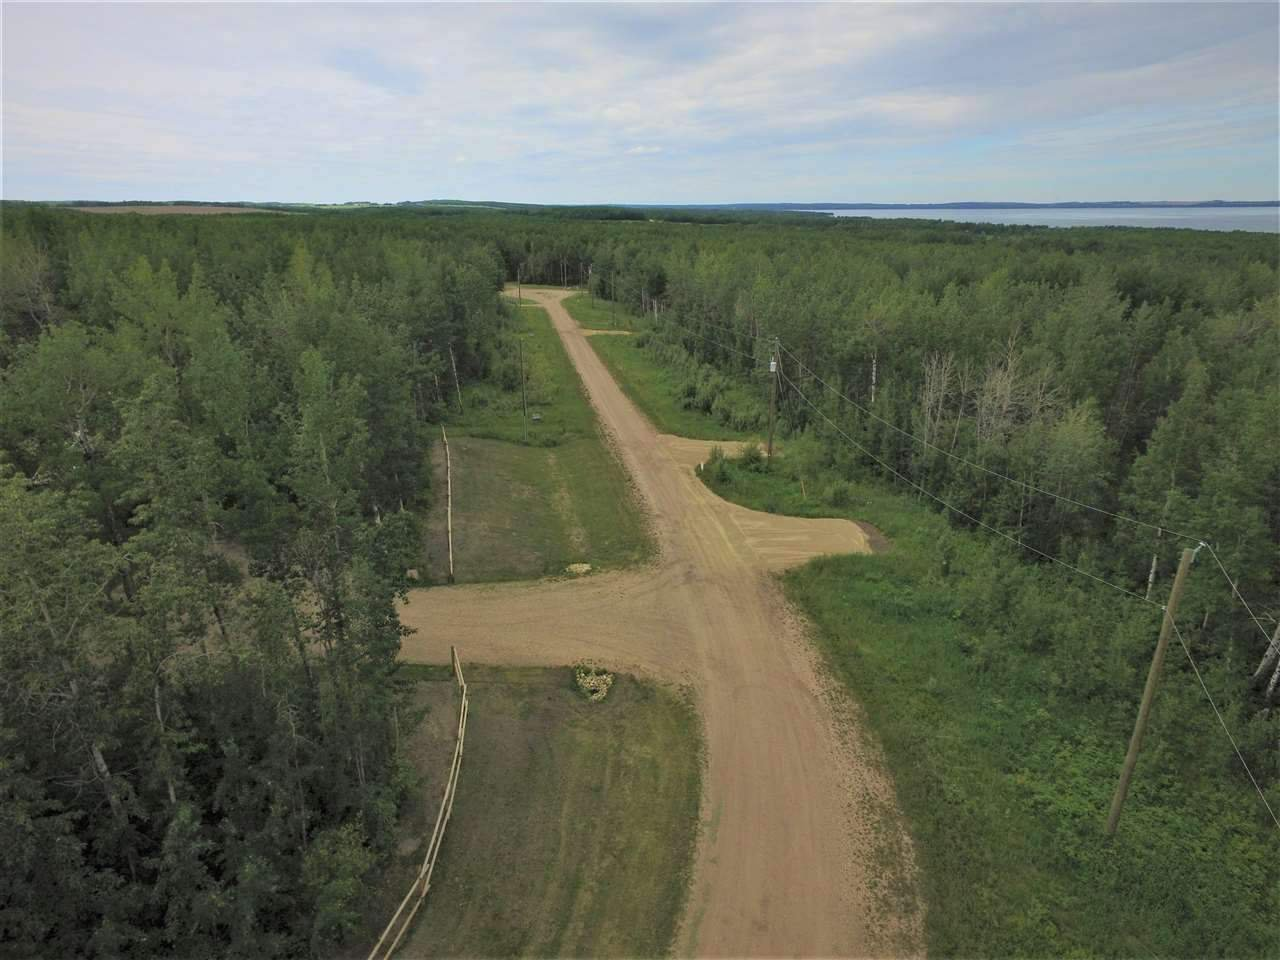 Photo 6: Photos: 11 13070 TWP RD 464: Rural Wetaskiwin County Rural Land/Vacant Lot for sale : MLS®# E4169948